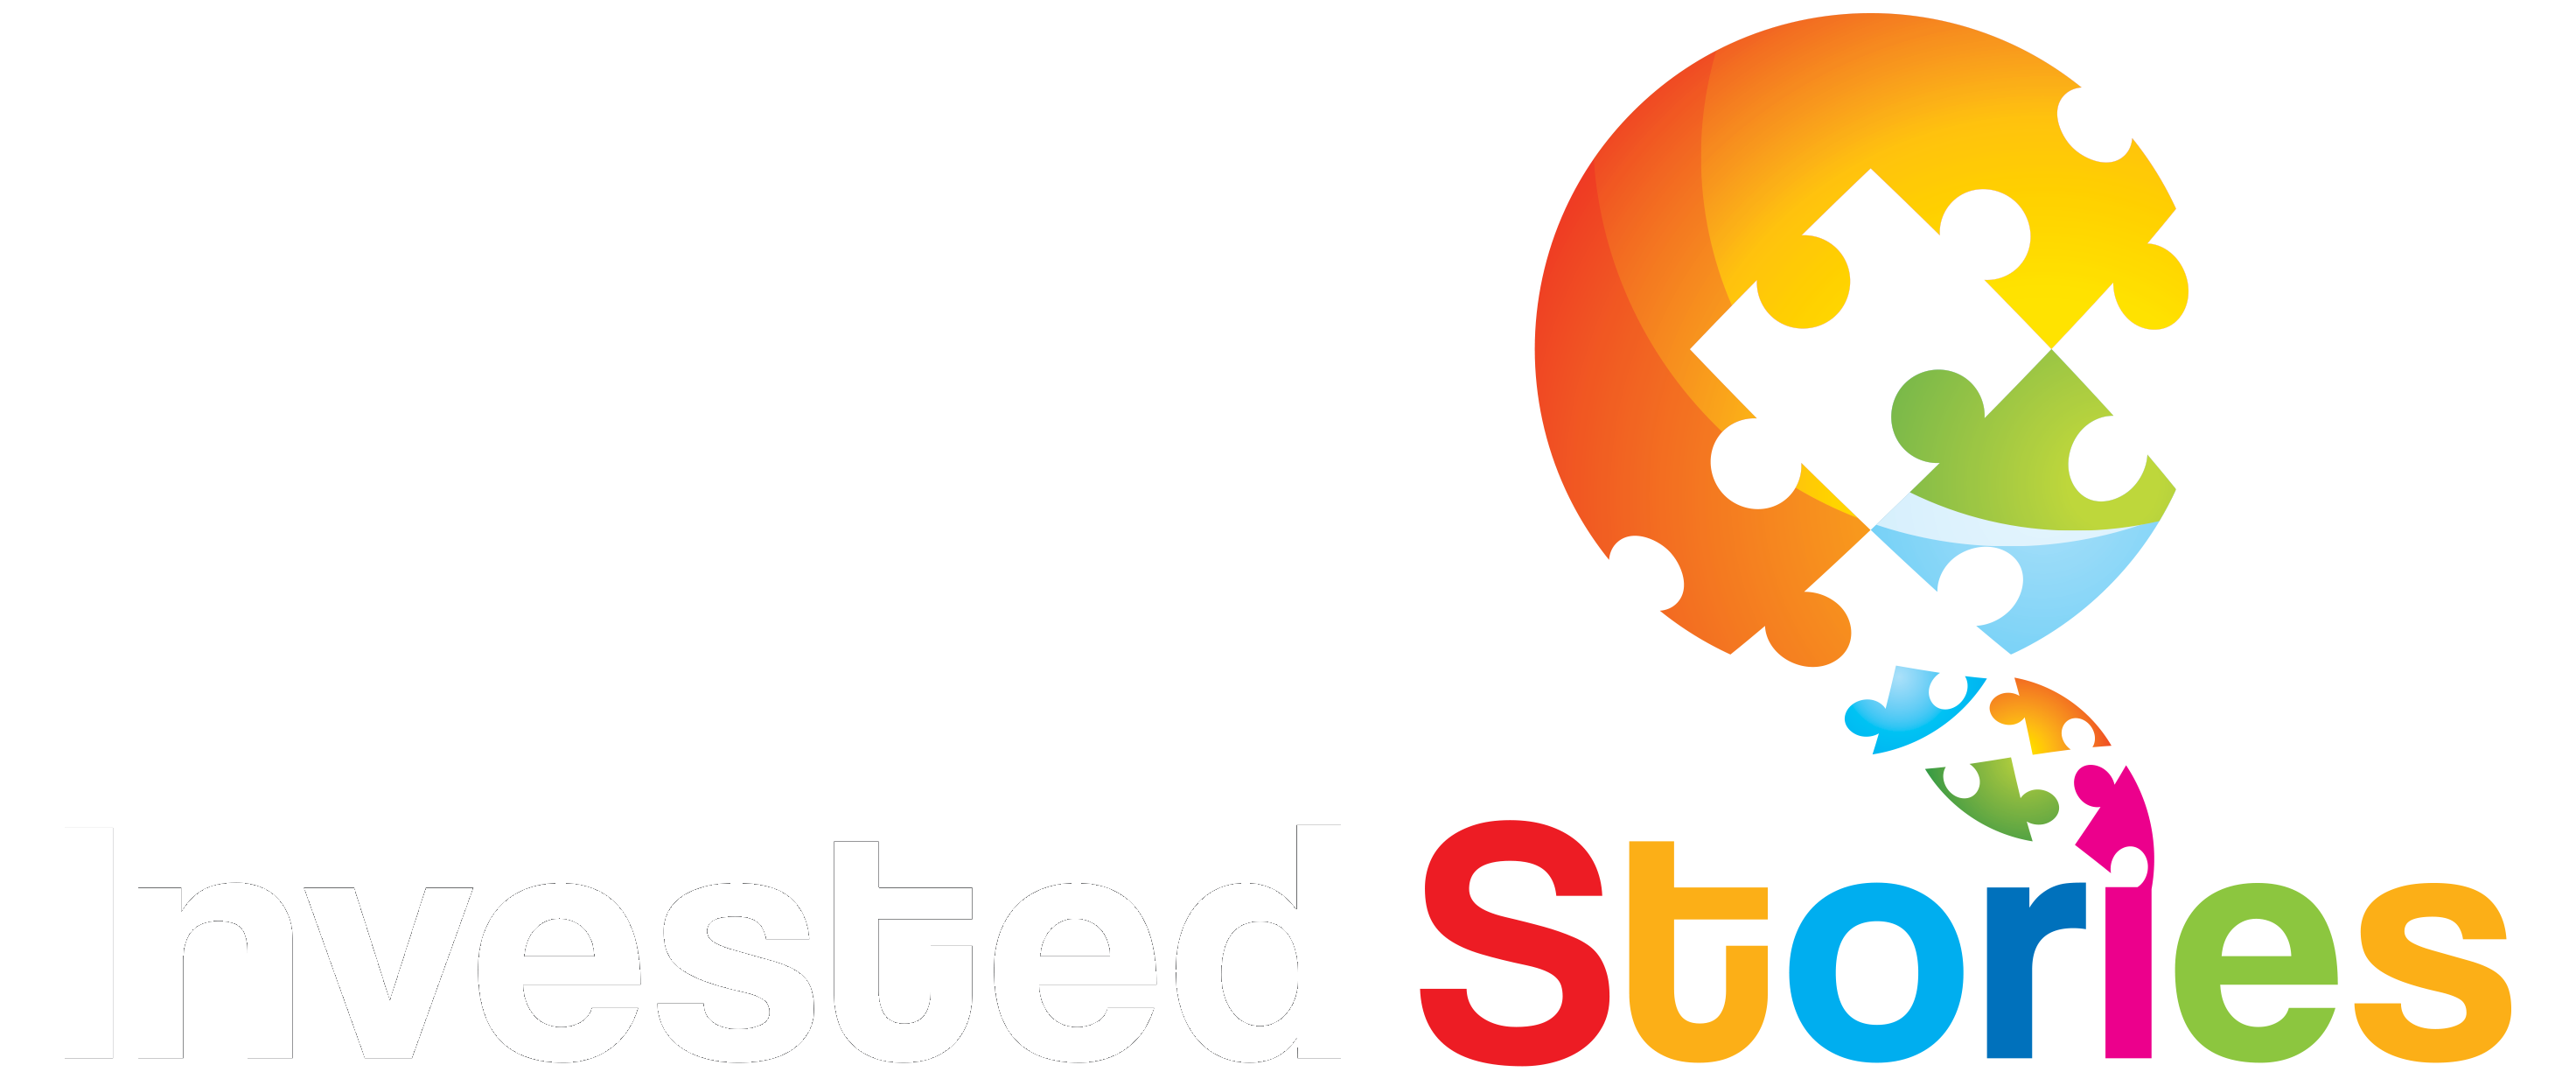 Invested Stories LLC